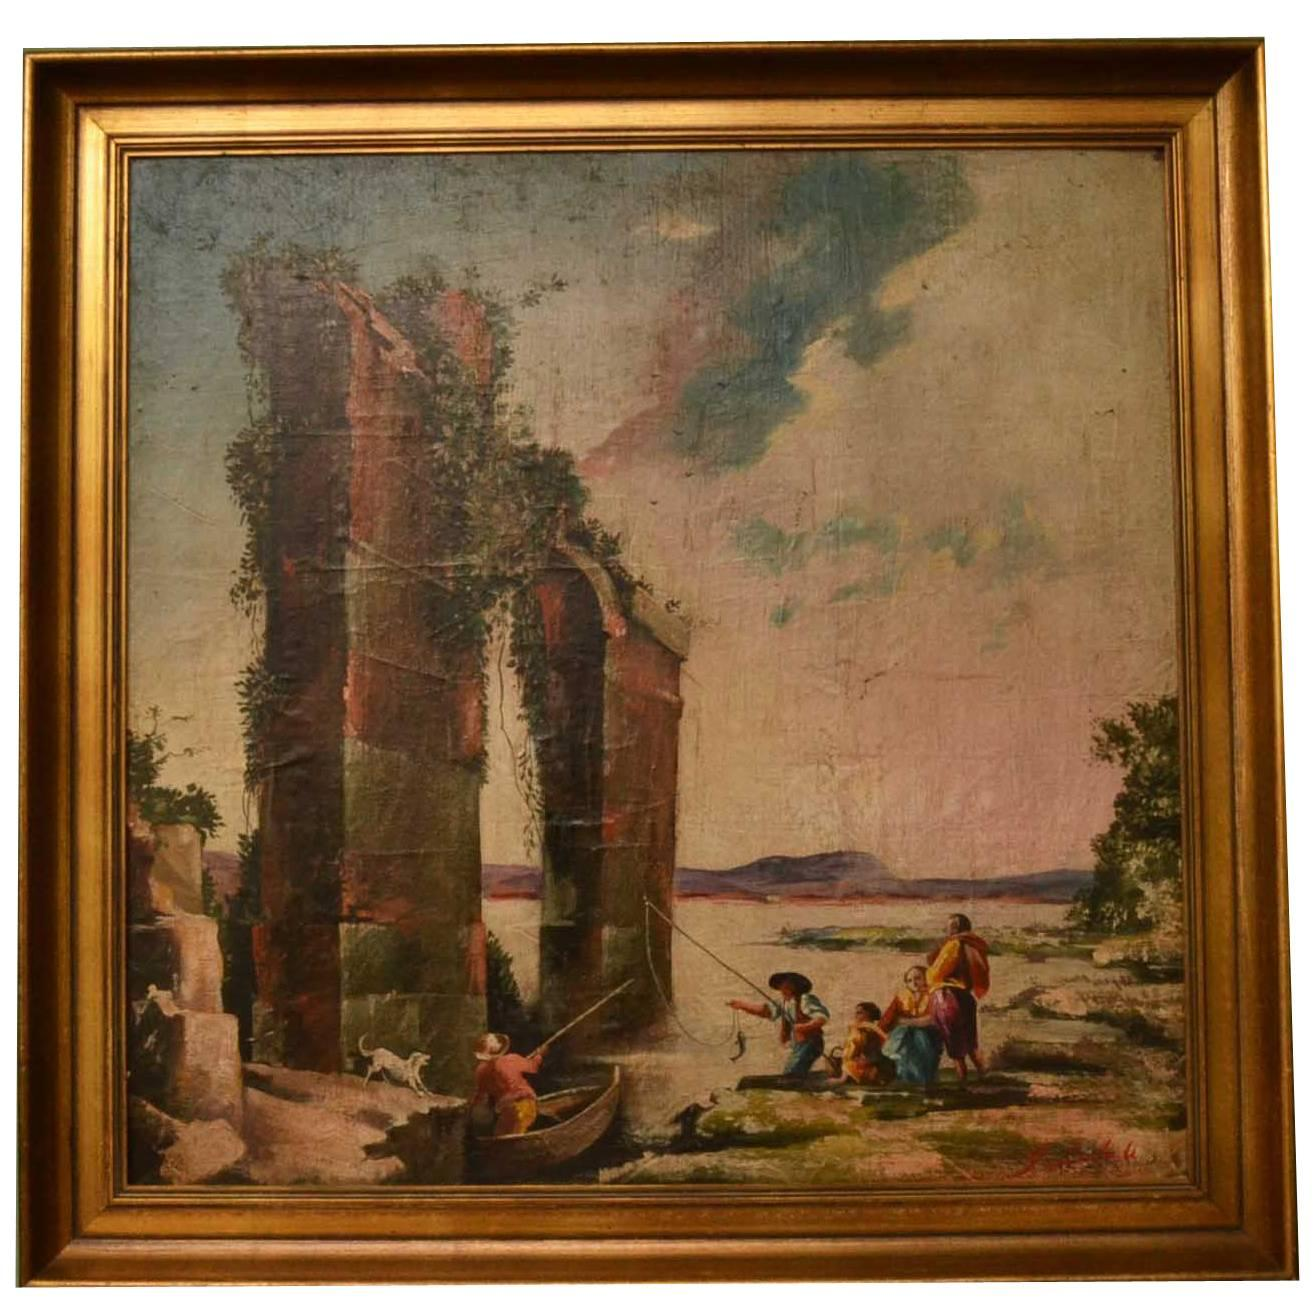 Antiques Oil Painting Roman Ruins Elegant In Style Other Antique Decorative Arts